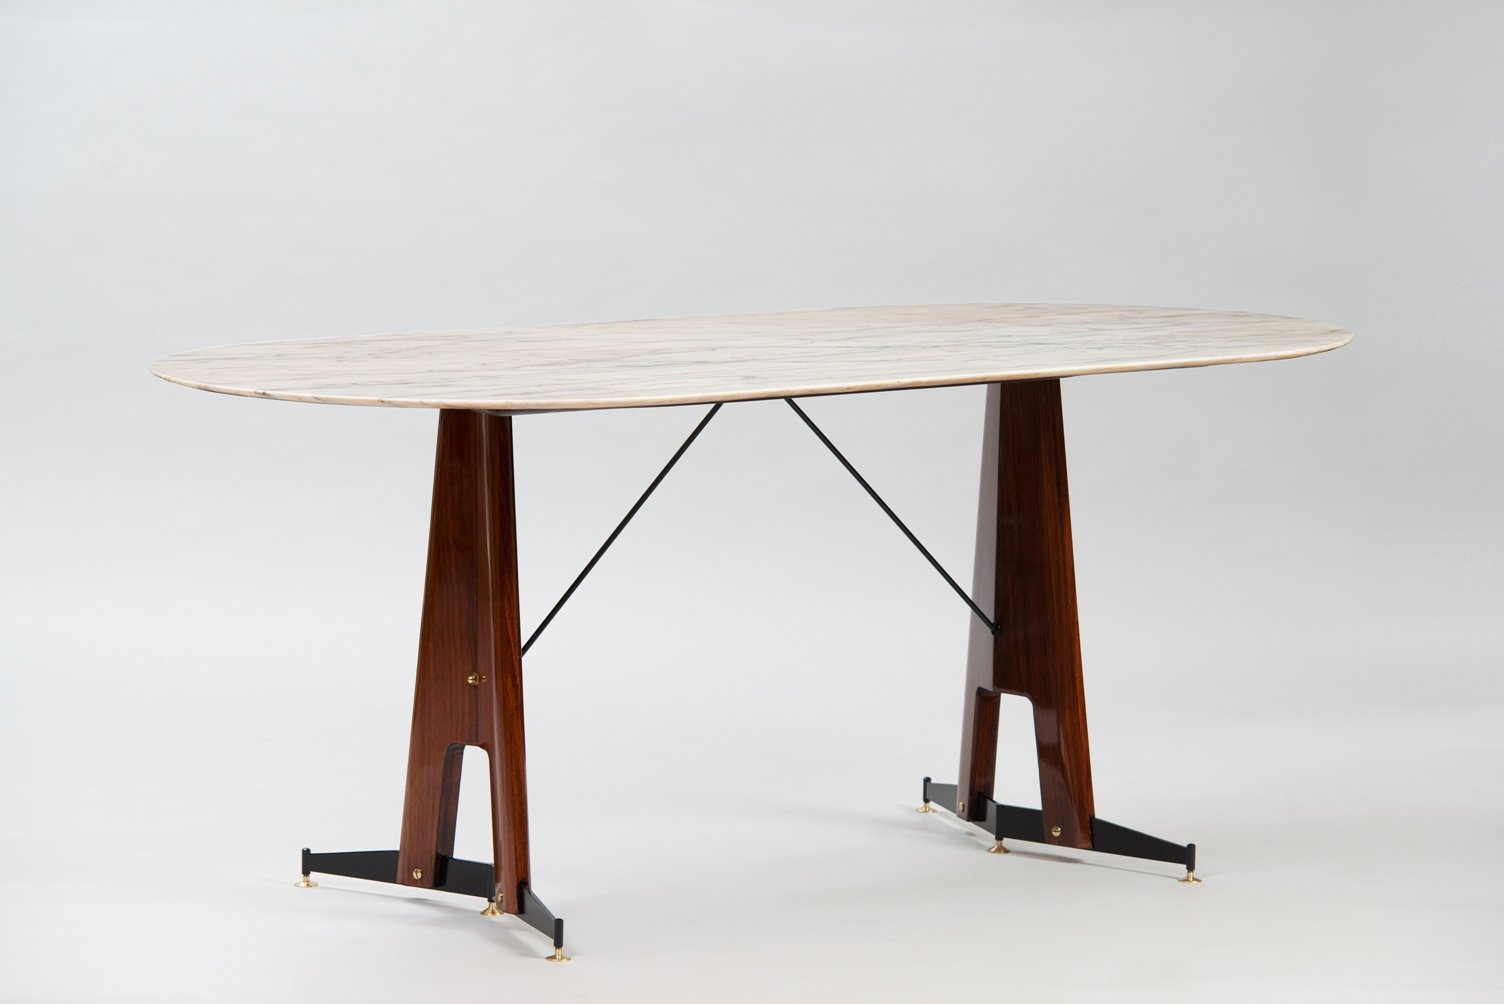 Table salle a manger marbre design for Table de salle a manger etroite